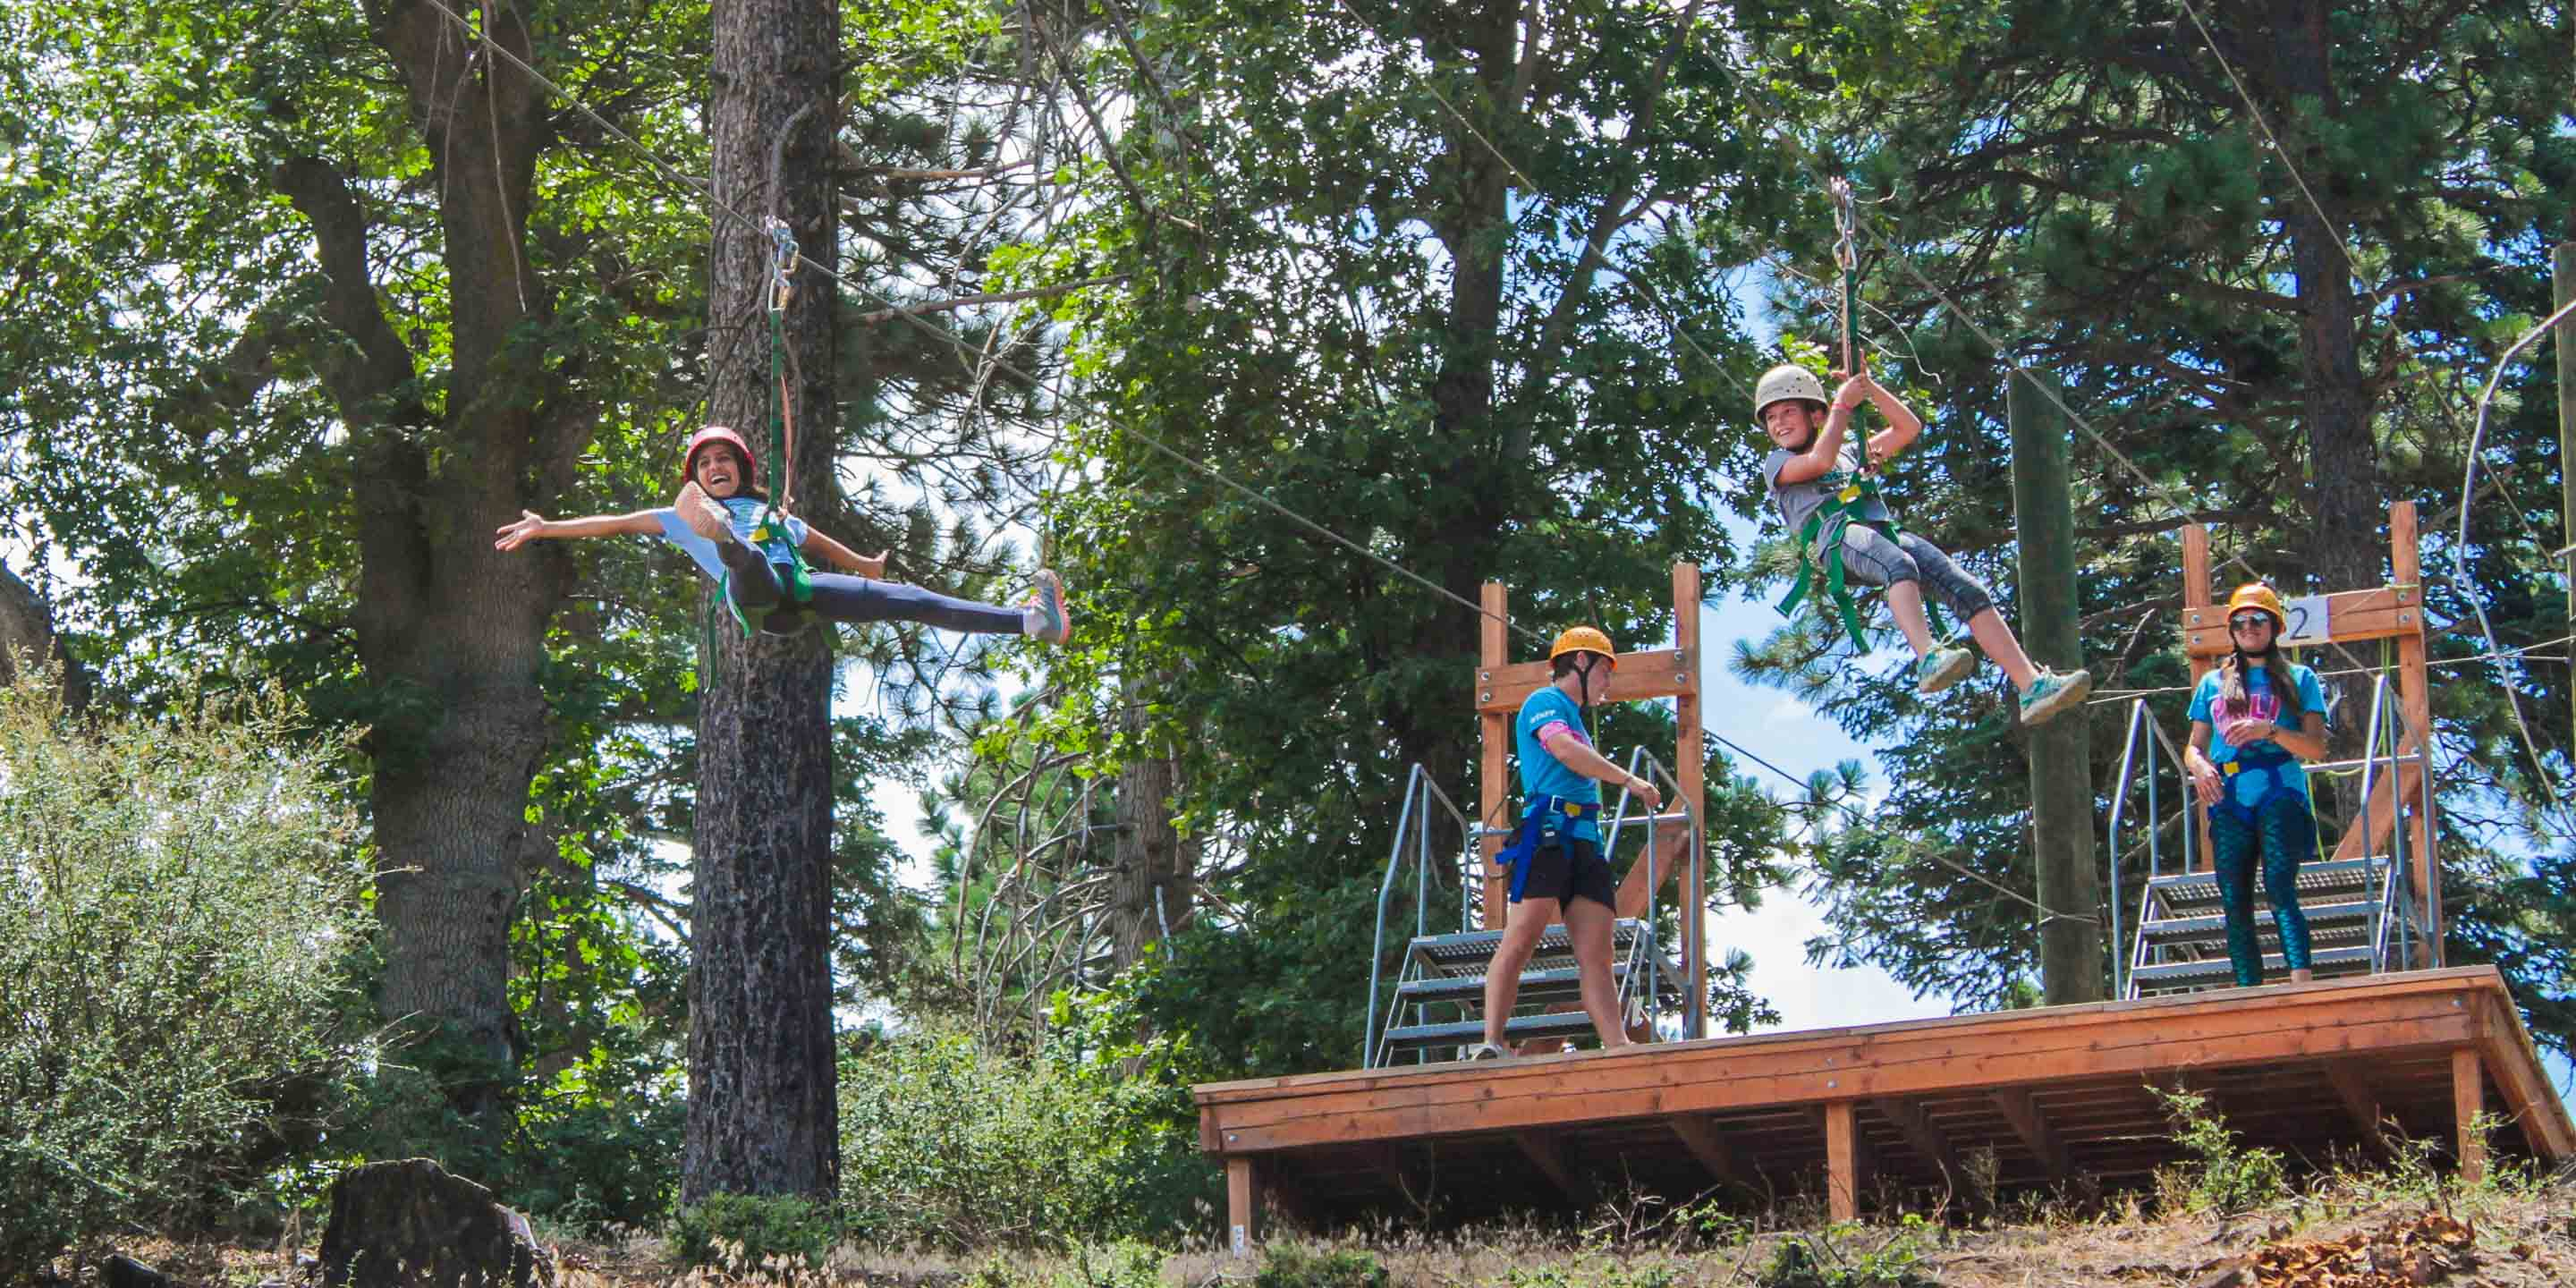 Two campers on zip line with staff in background